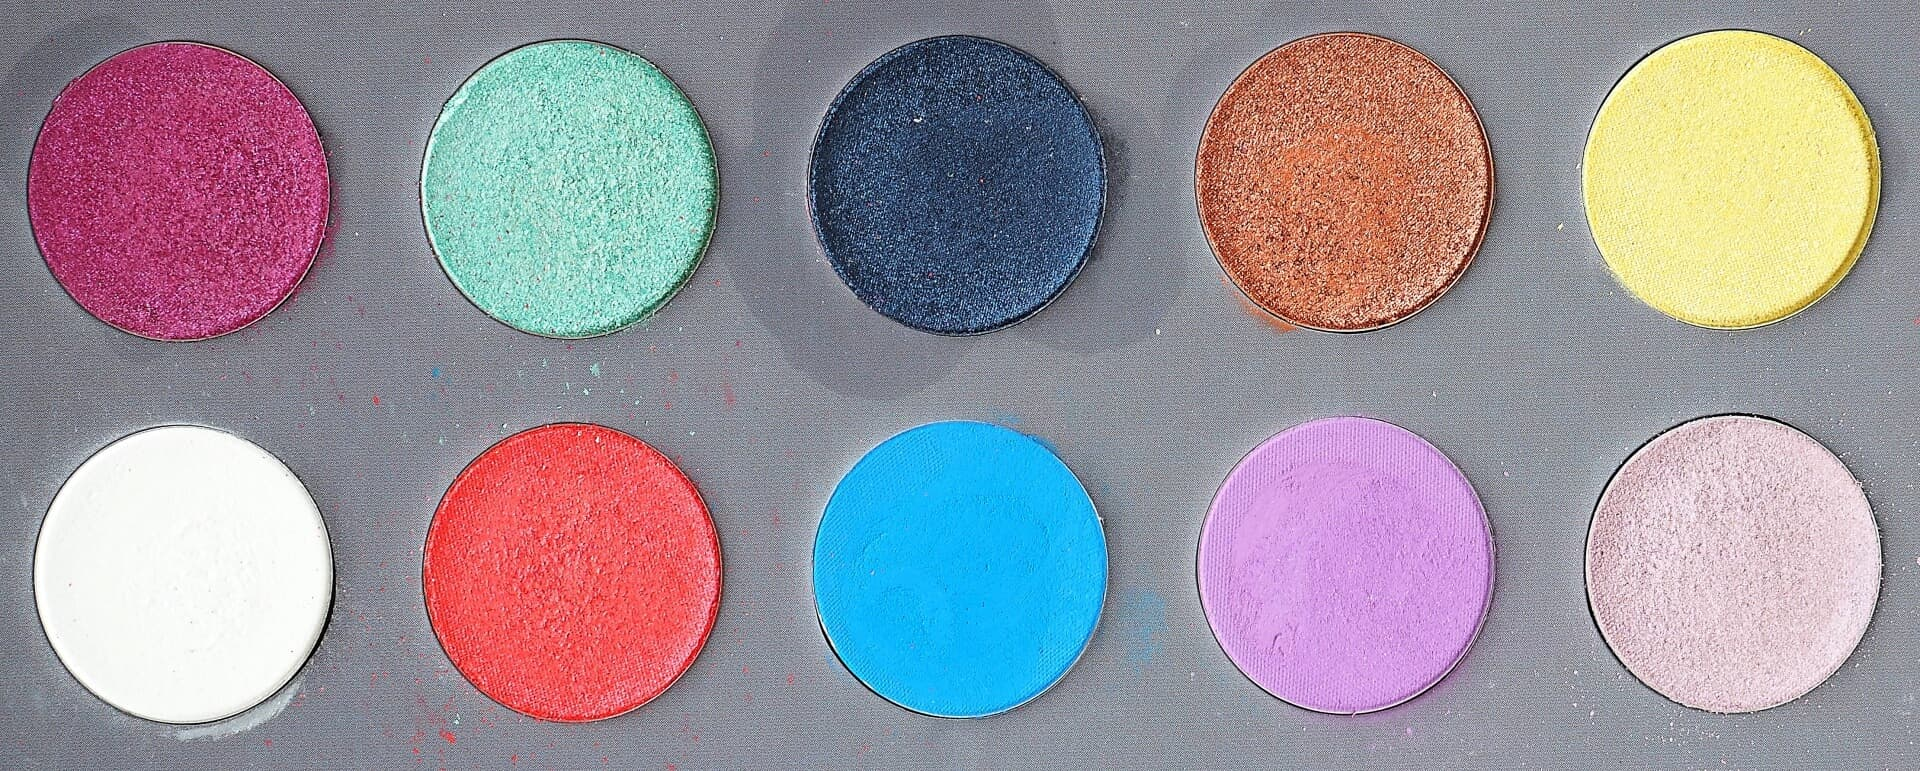 AFFECT PROVOCATION EYESHADOW PALETTE